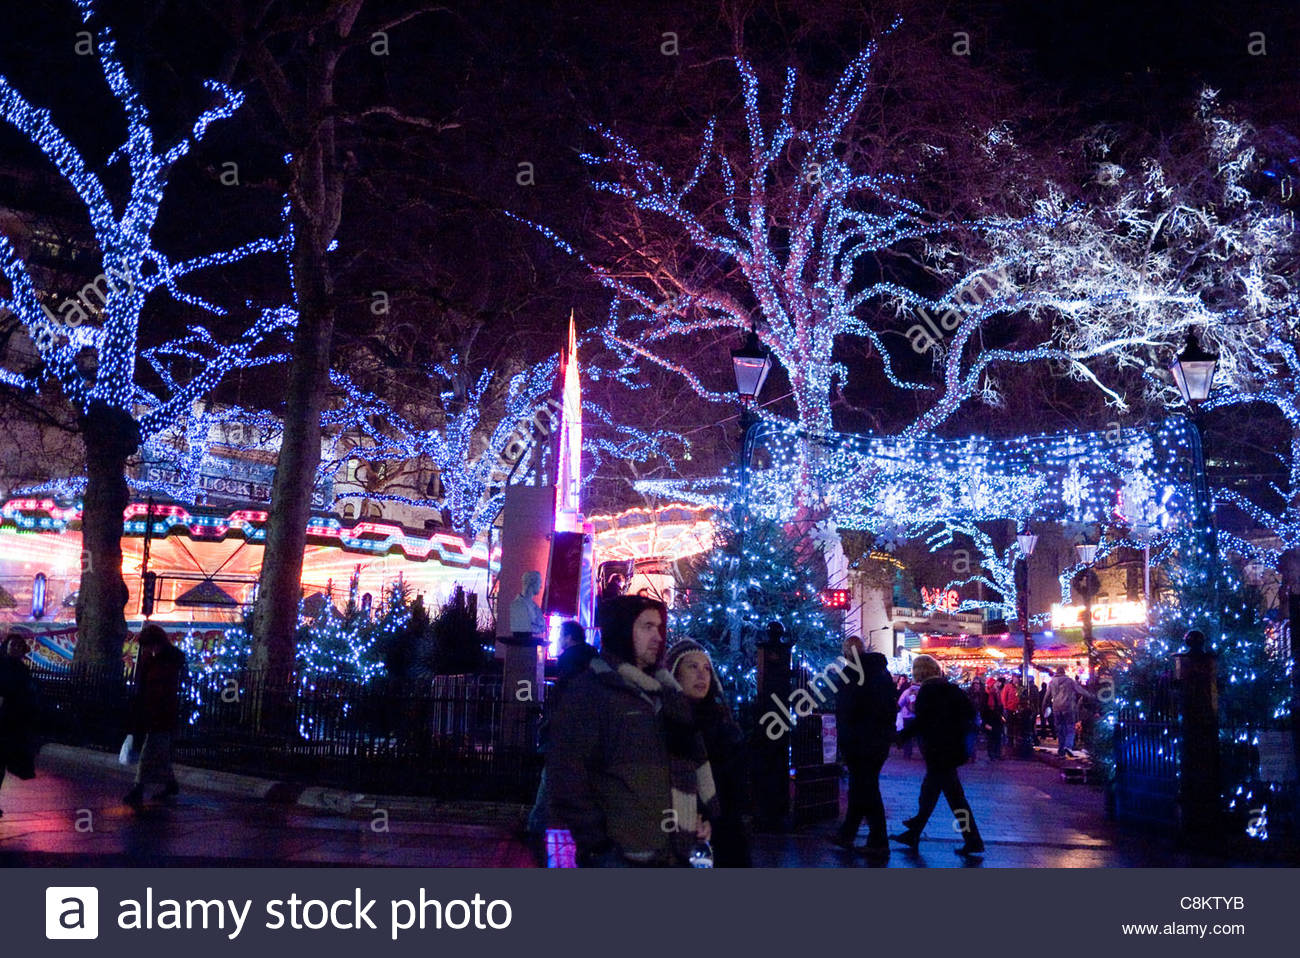 Londoners: London Street decorations at night in Leicester Square - Stock Image